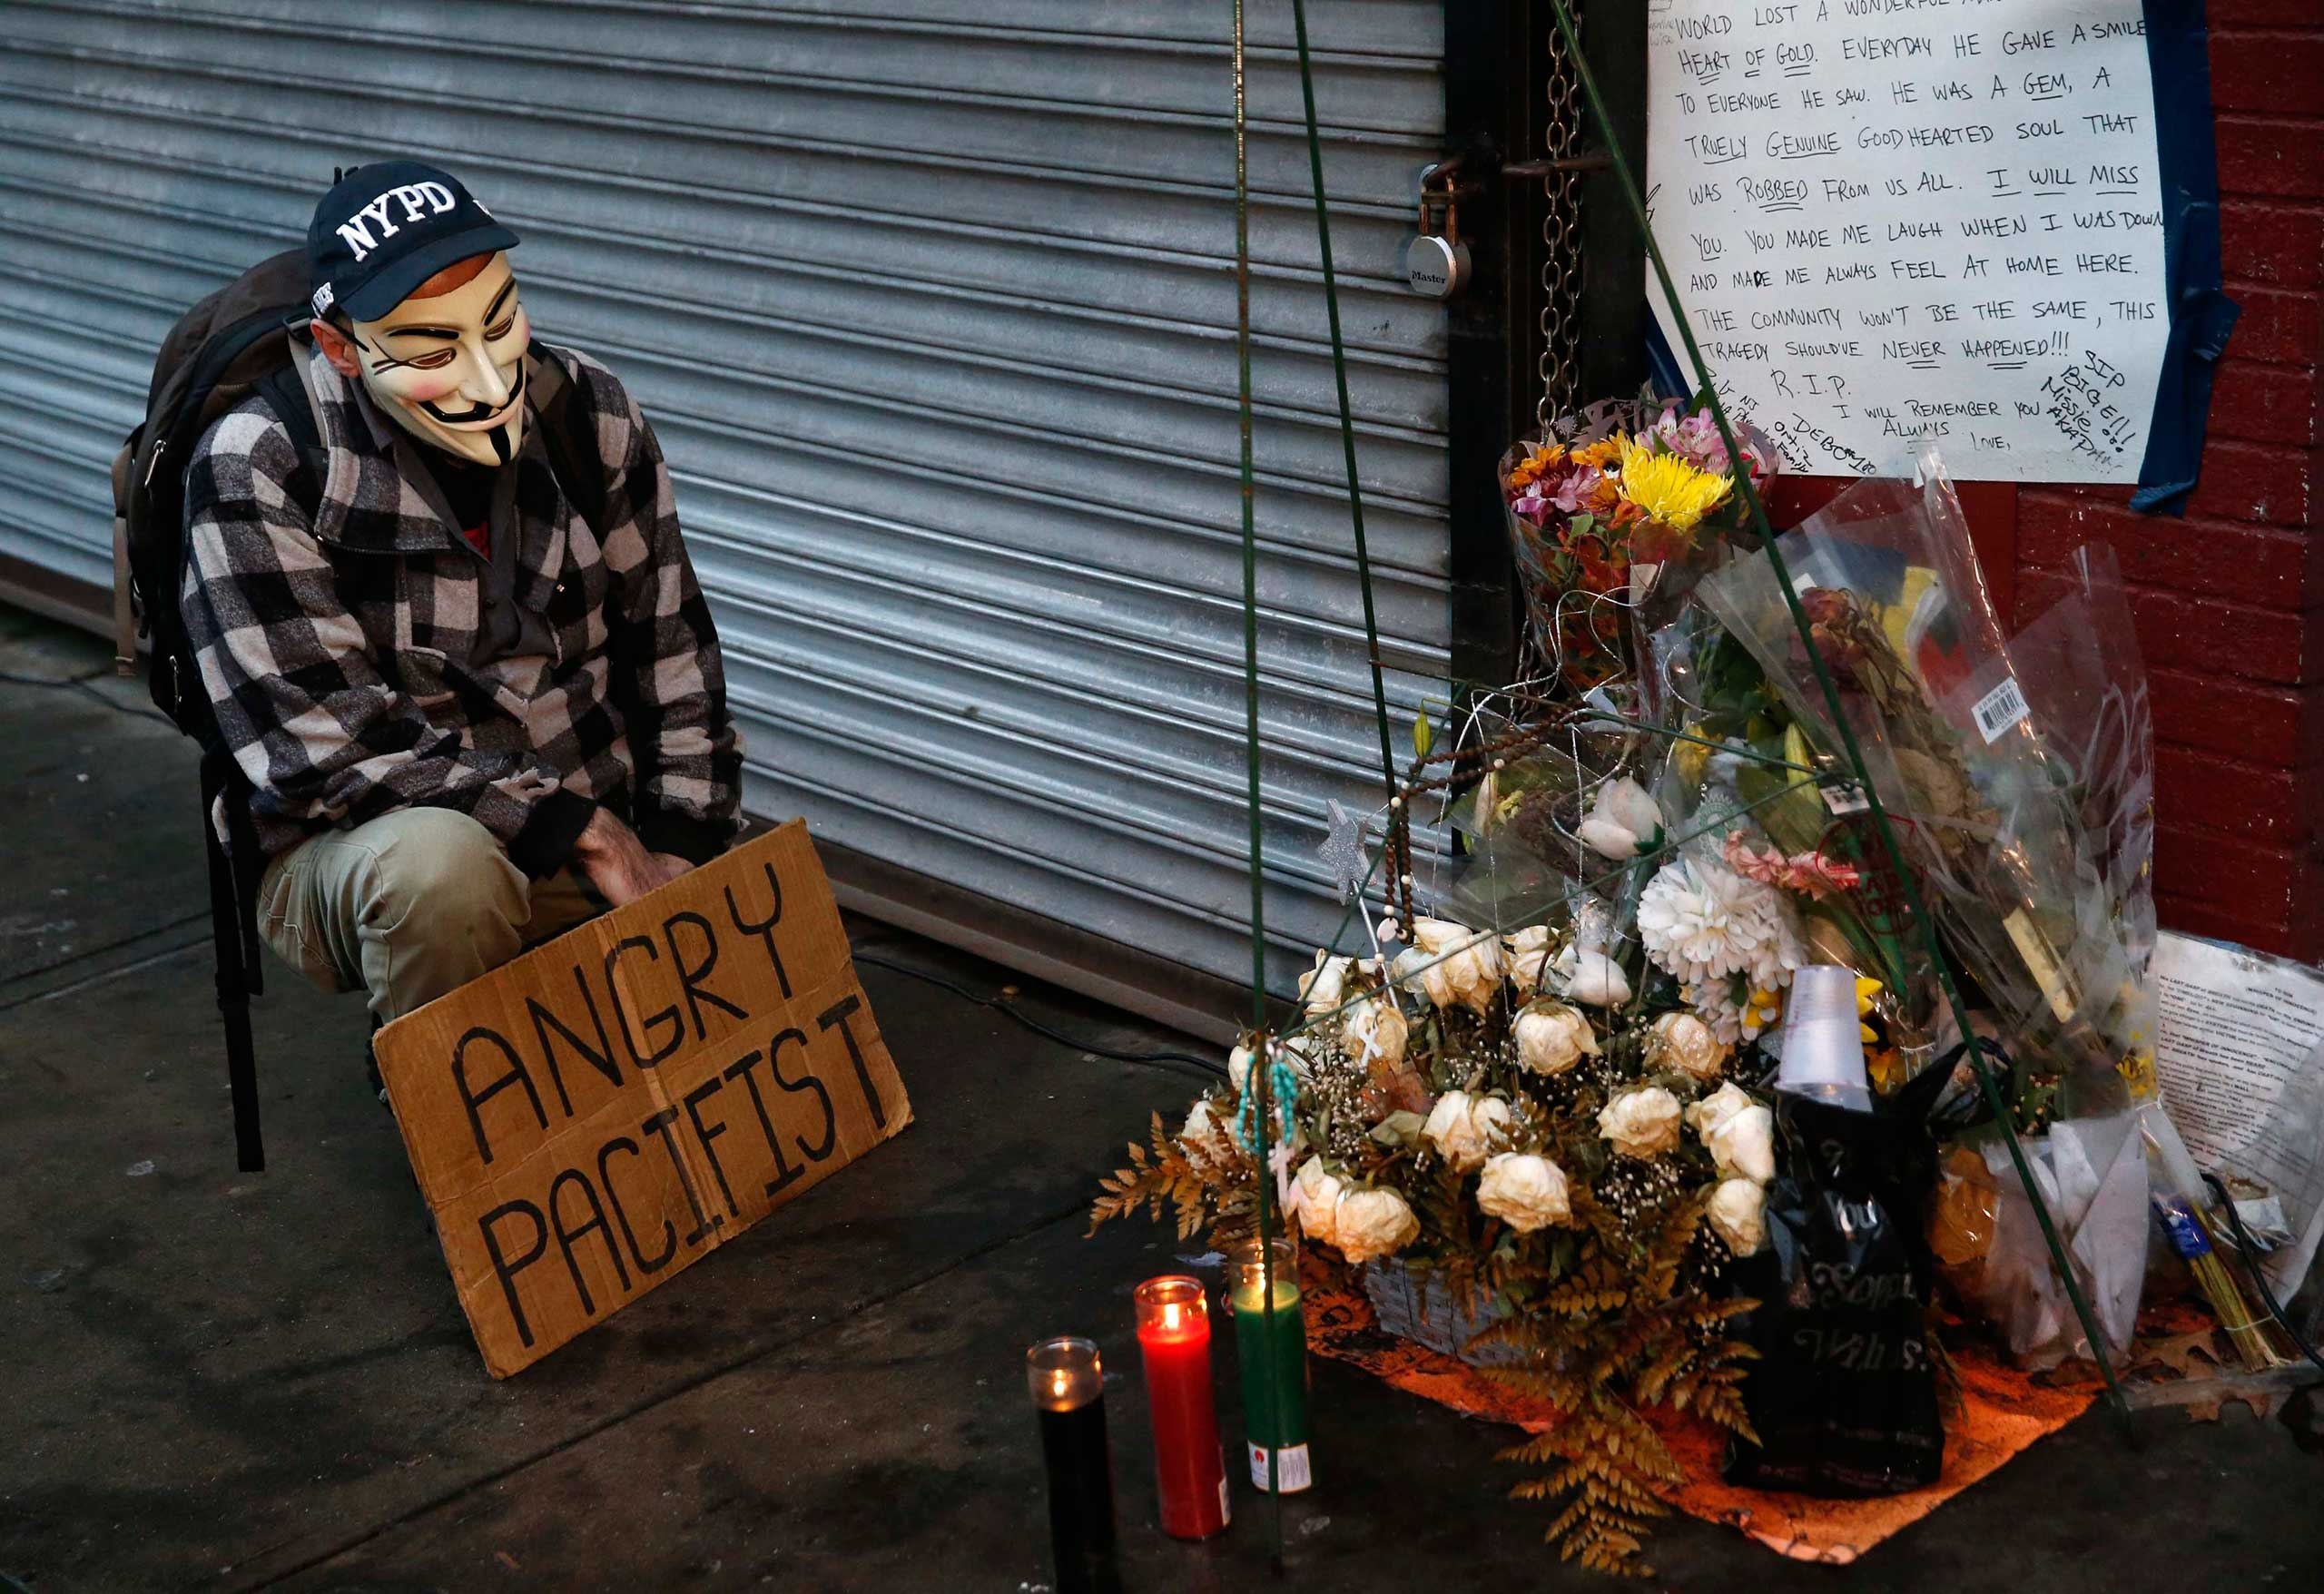 A demonstrator stands next to a makeshift memorial where Eric Garner died during an arrest in July in the Staten Island borough of New York City on Dec. 3, 2014.